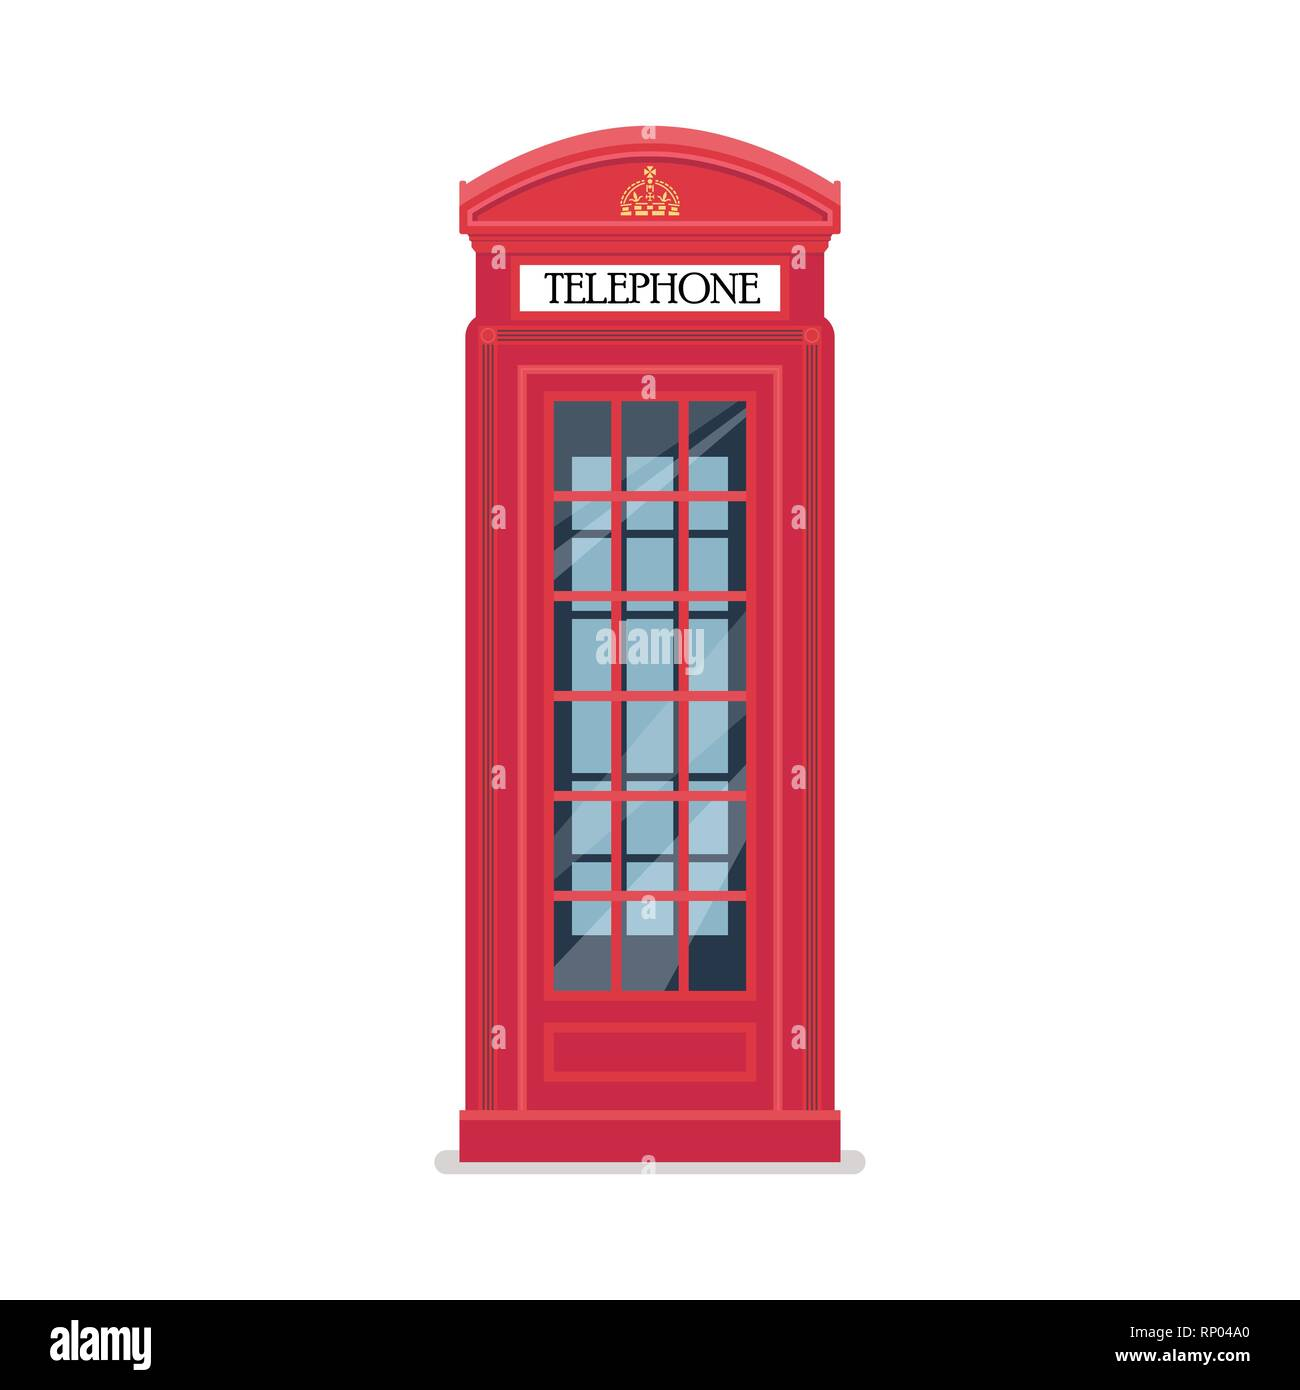 London red telephone booth. Vector illustration. - Stock Image